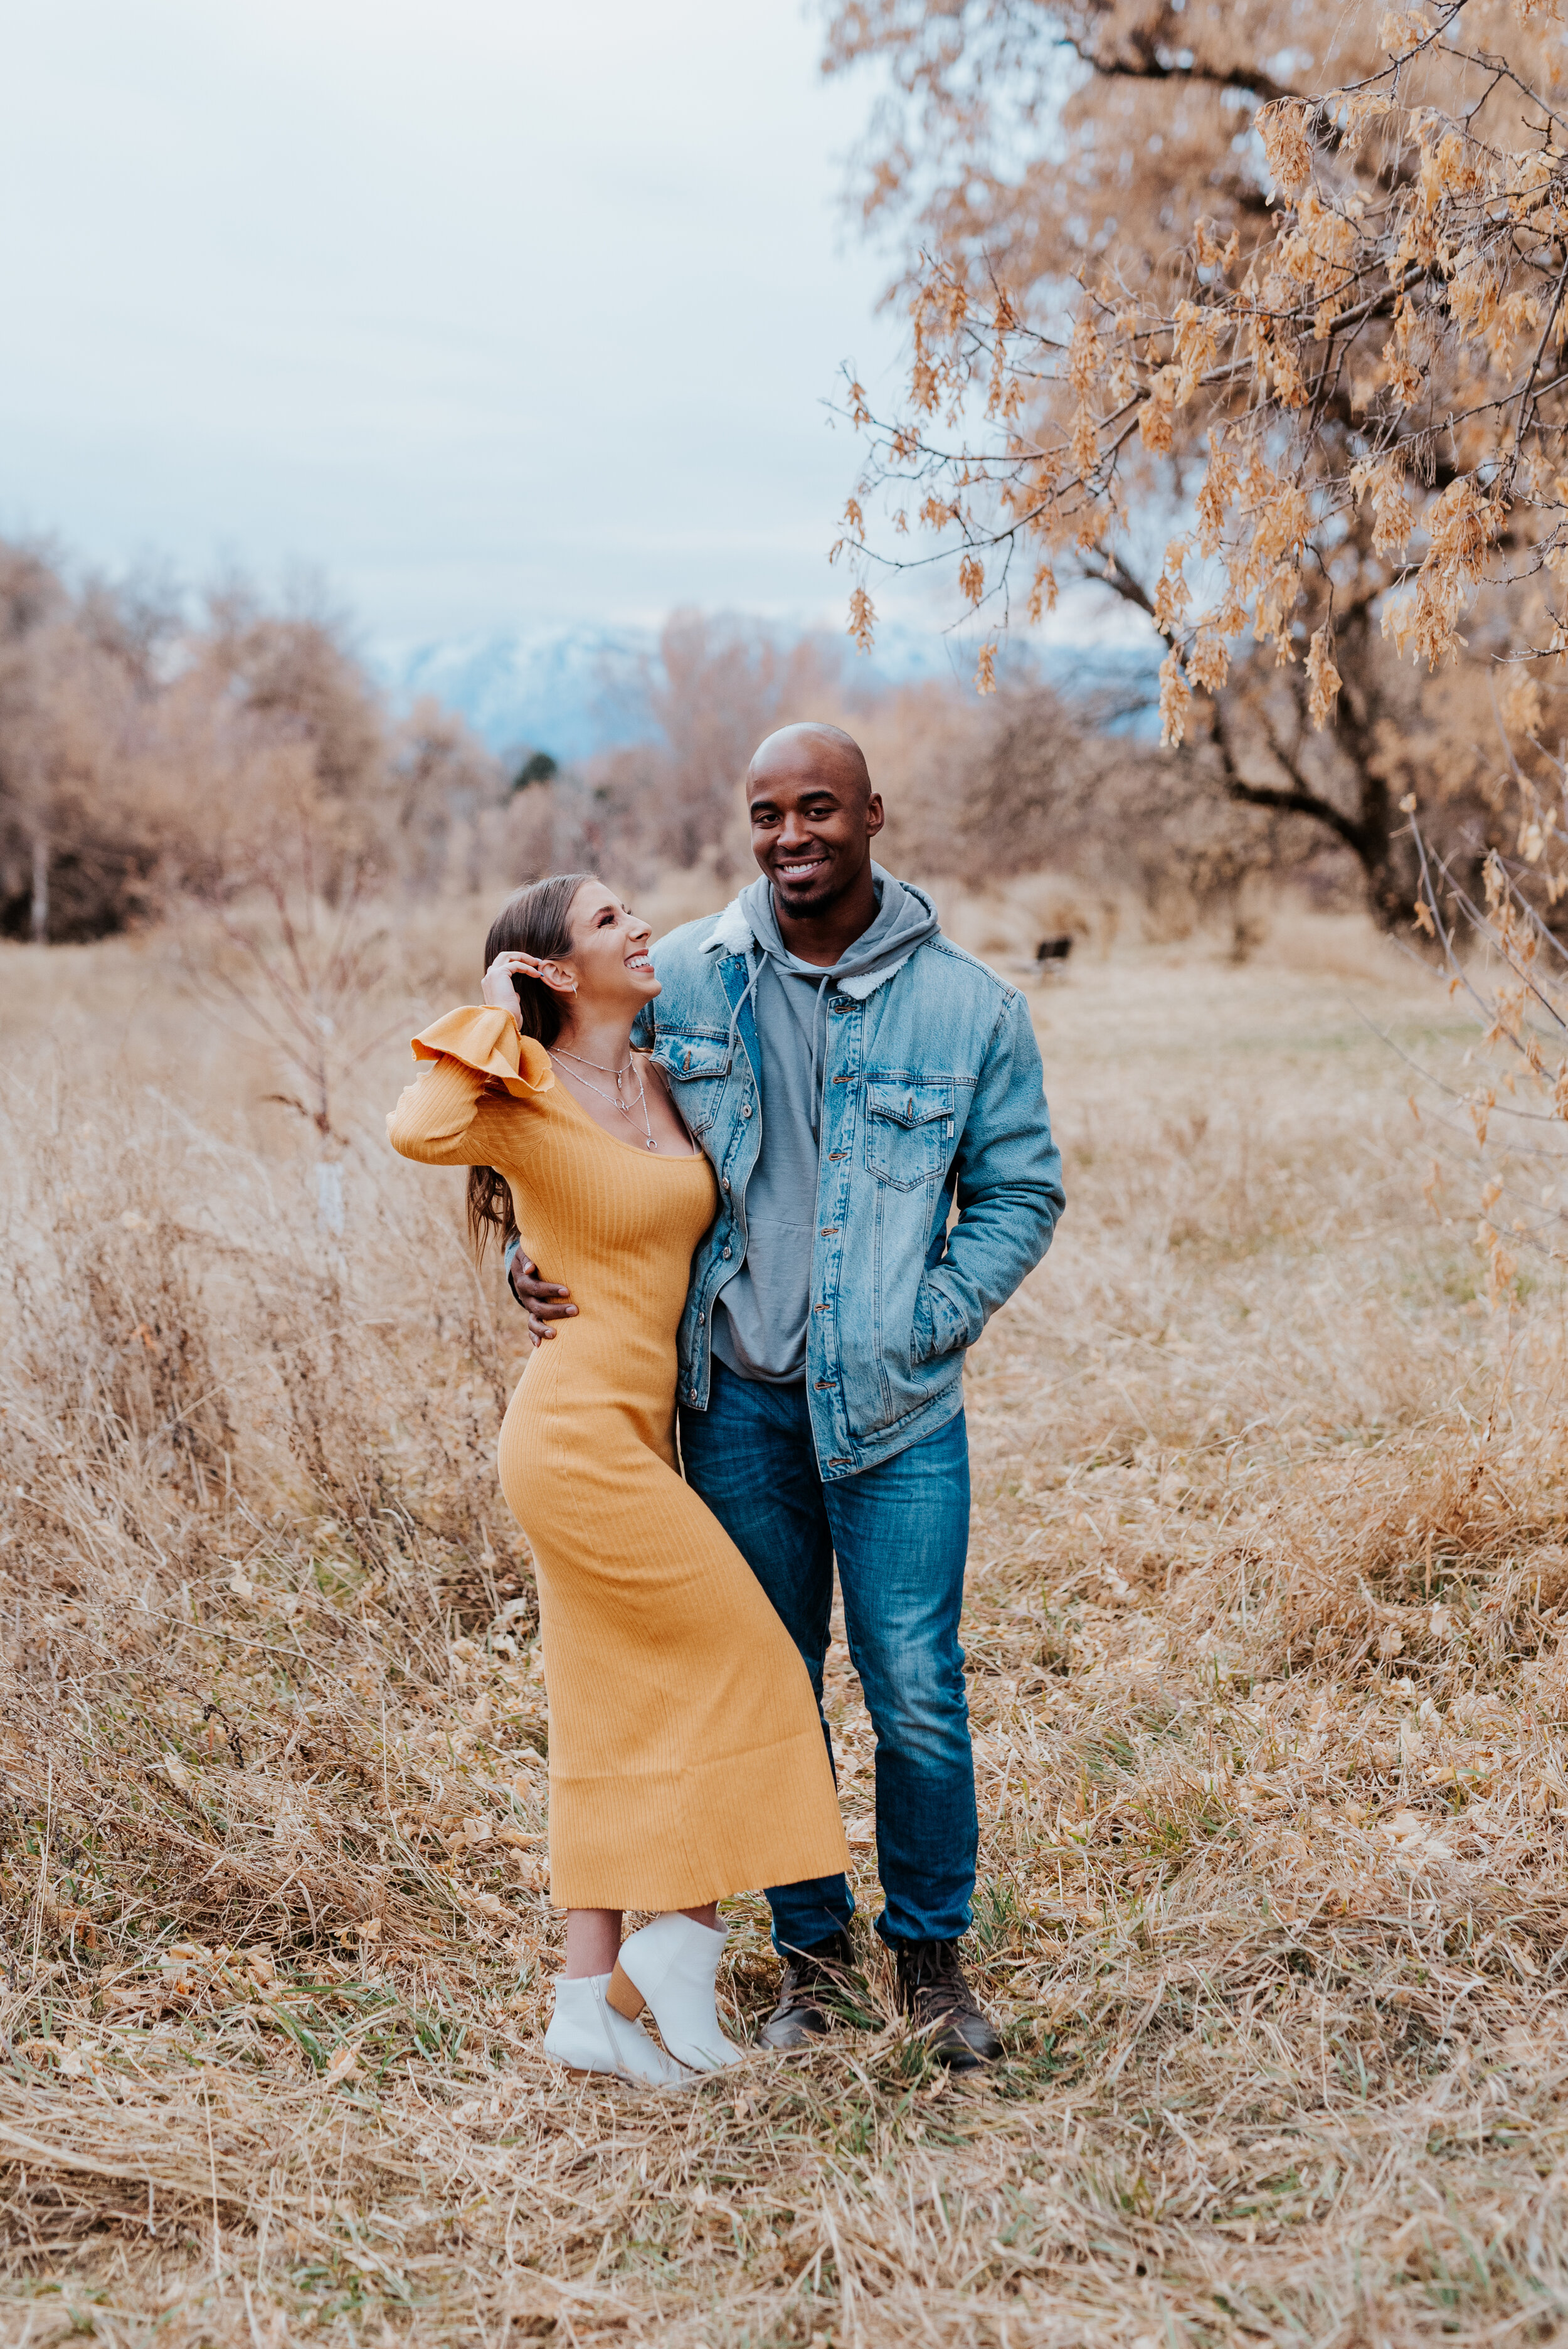 logan utah cache valley photographer couples session what to wear to couples session happy couple casual outfit inspo semi formal outfit inspo what to wear in the fall beautiful couple couple posing ideas couple standing together model couple mentor session winter photoshoot adventurous couple #loganutahphotographer #couplesession #couplegoals #relationshipgoals #makeupinspo #couple #cachevalleyphotographer #utahphotographer #coupleposingideas #love